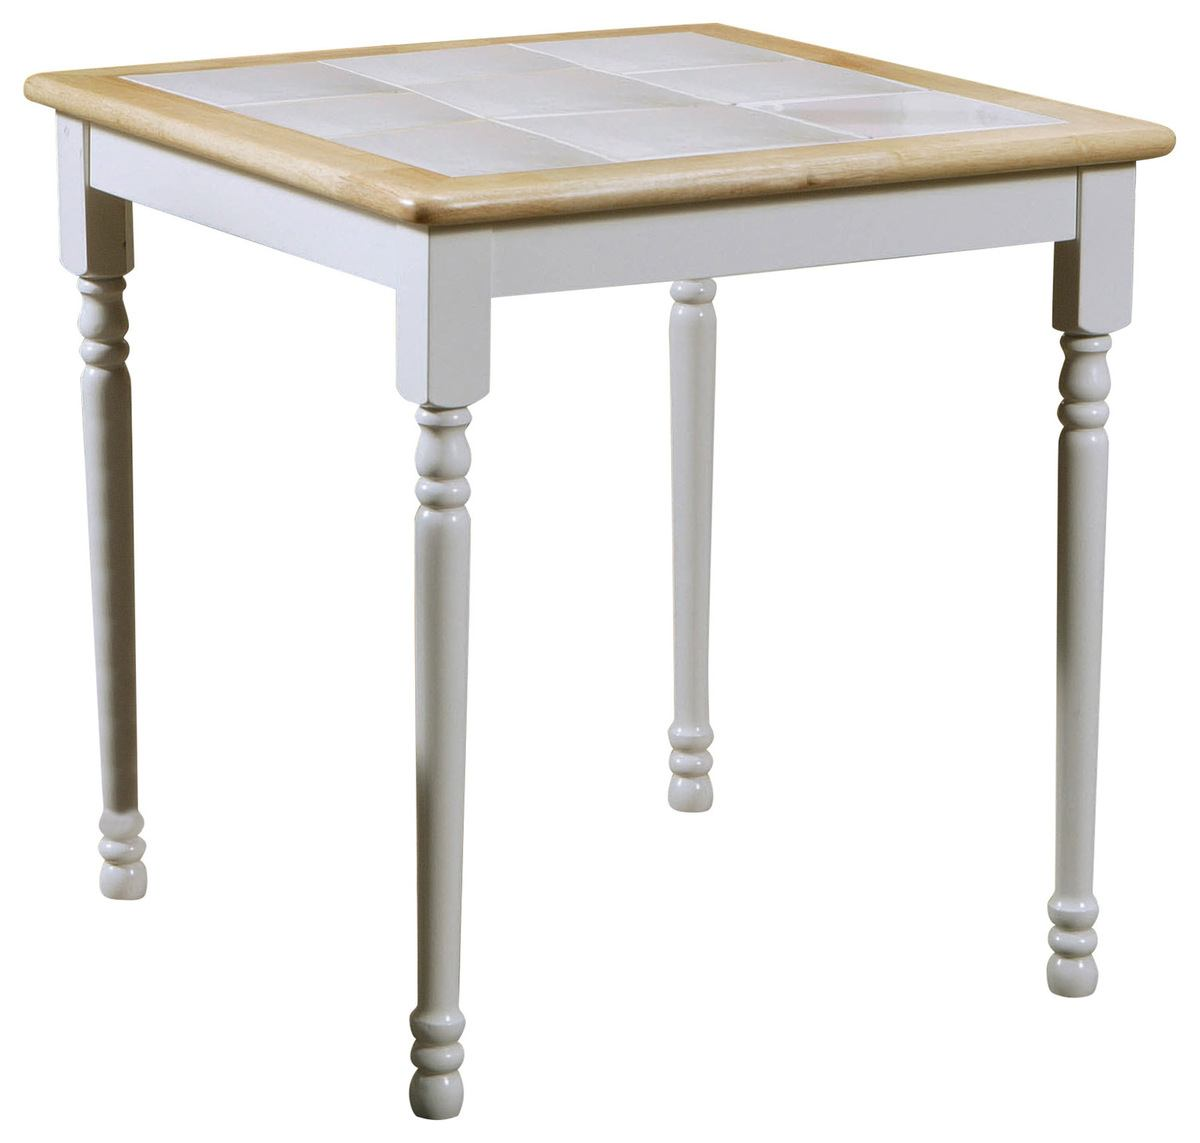 Coaster Dining Table in White and Natural Finish 4191